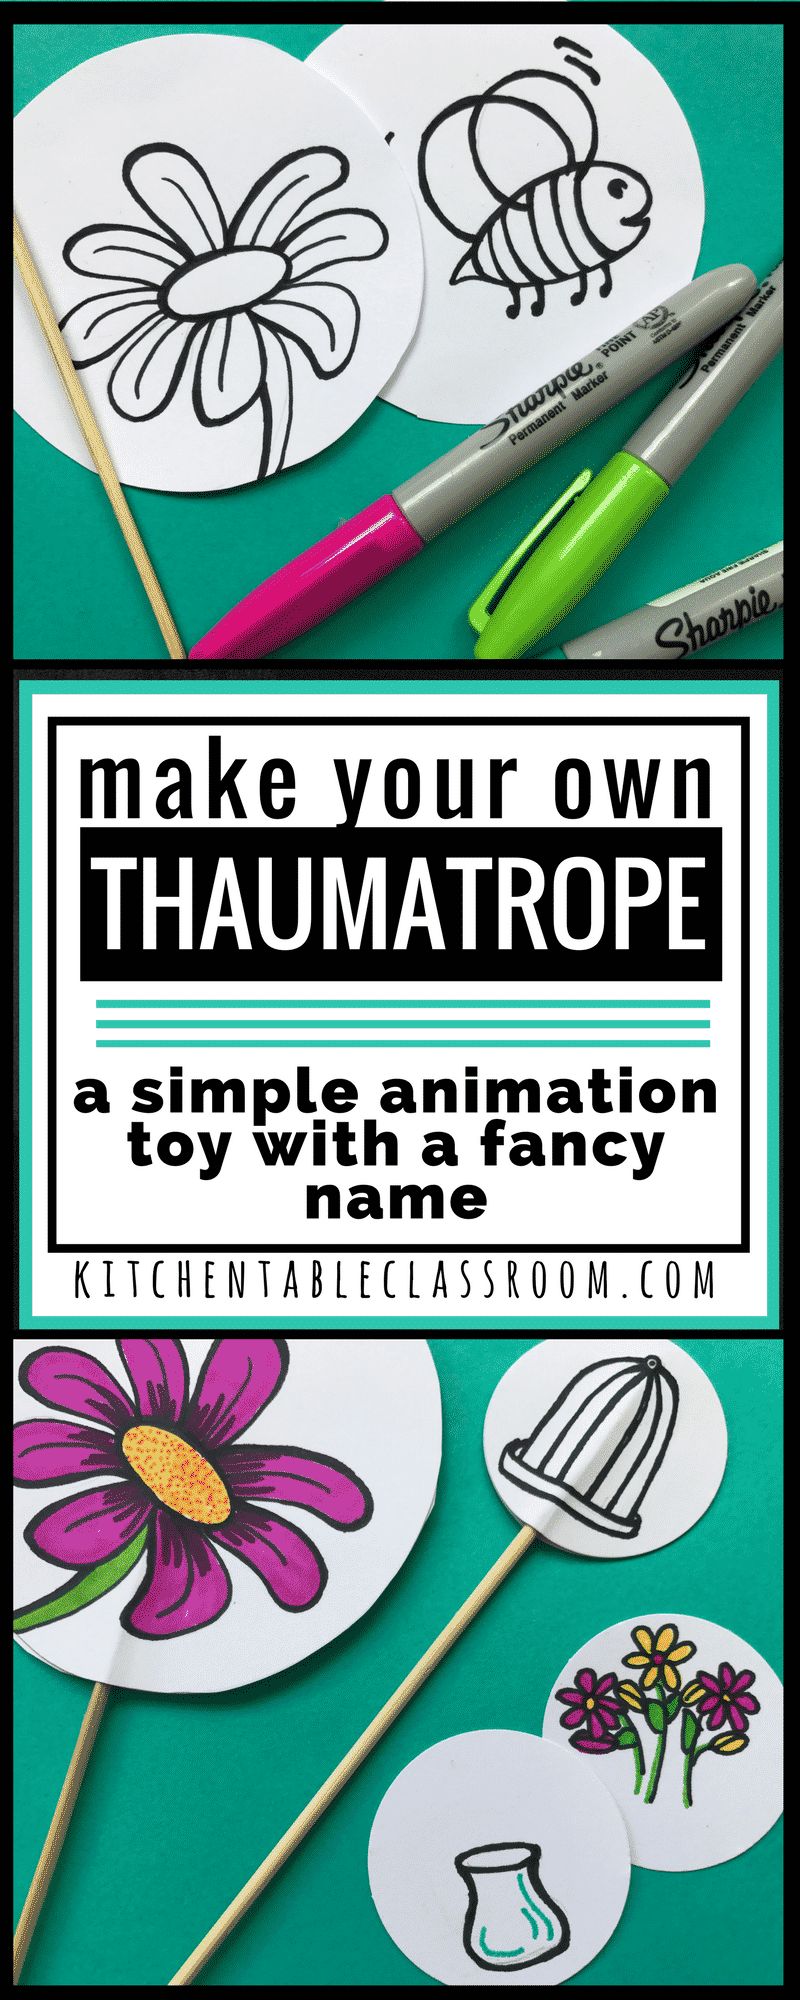 A thaumatrope has a different image on each side. When spun rapidly they give the impression of blending into one.It's simple but also a little magic.